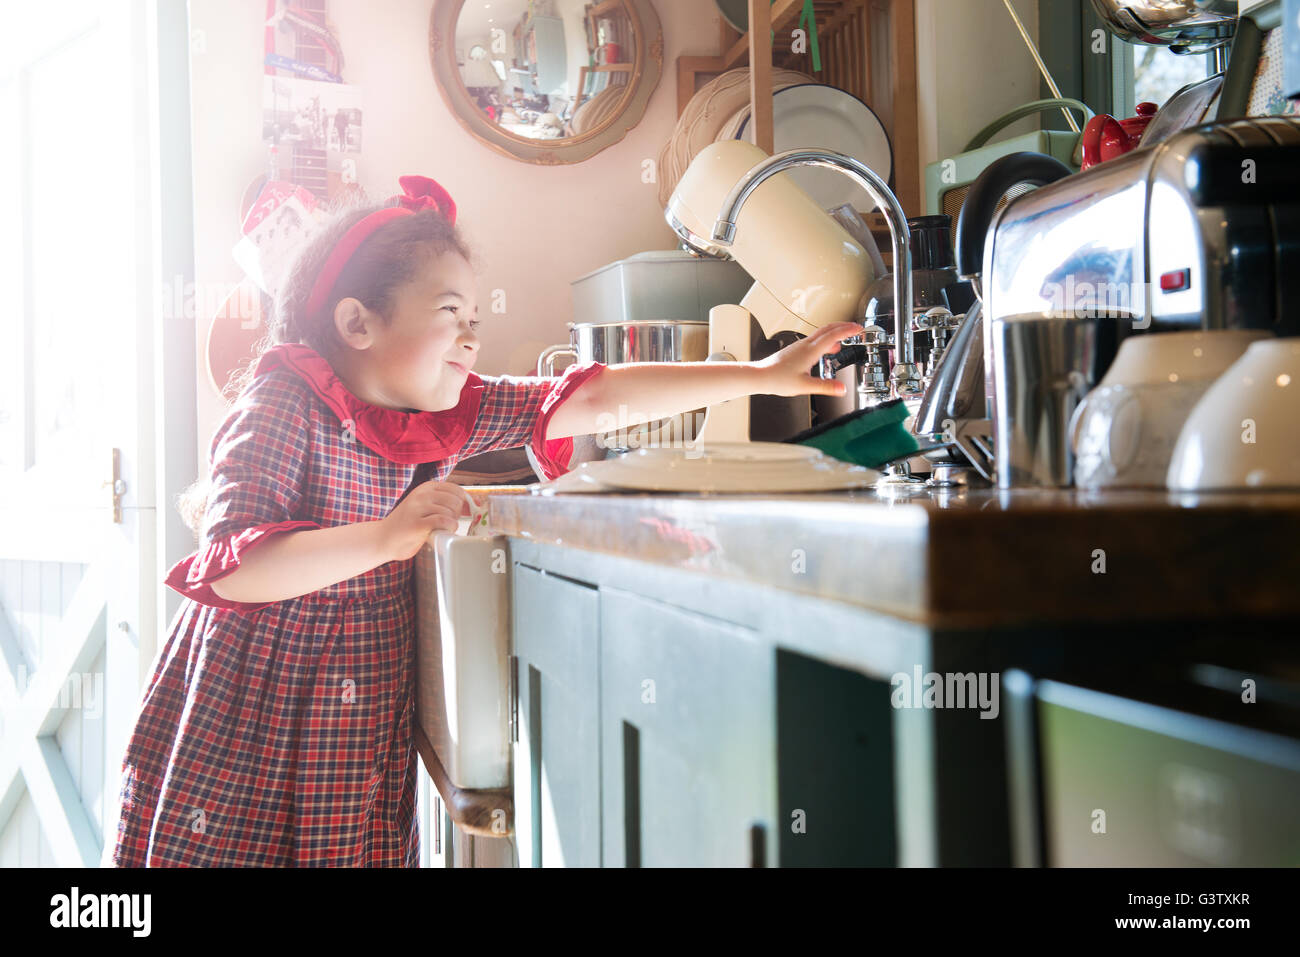 A six year old girl washing dishes at a kitchen sink. - Stock Image